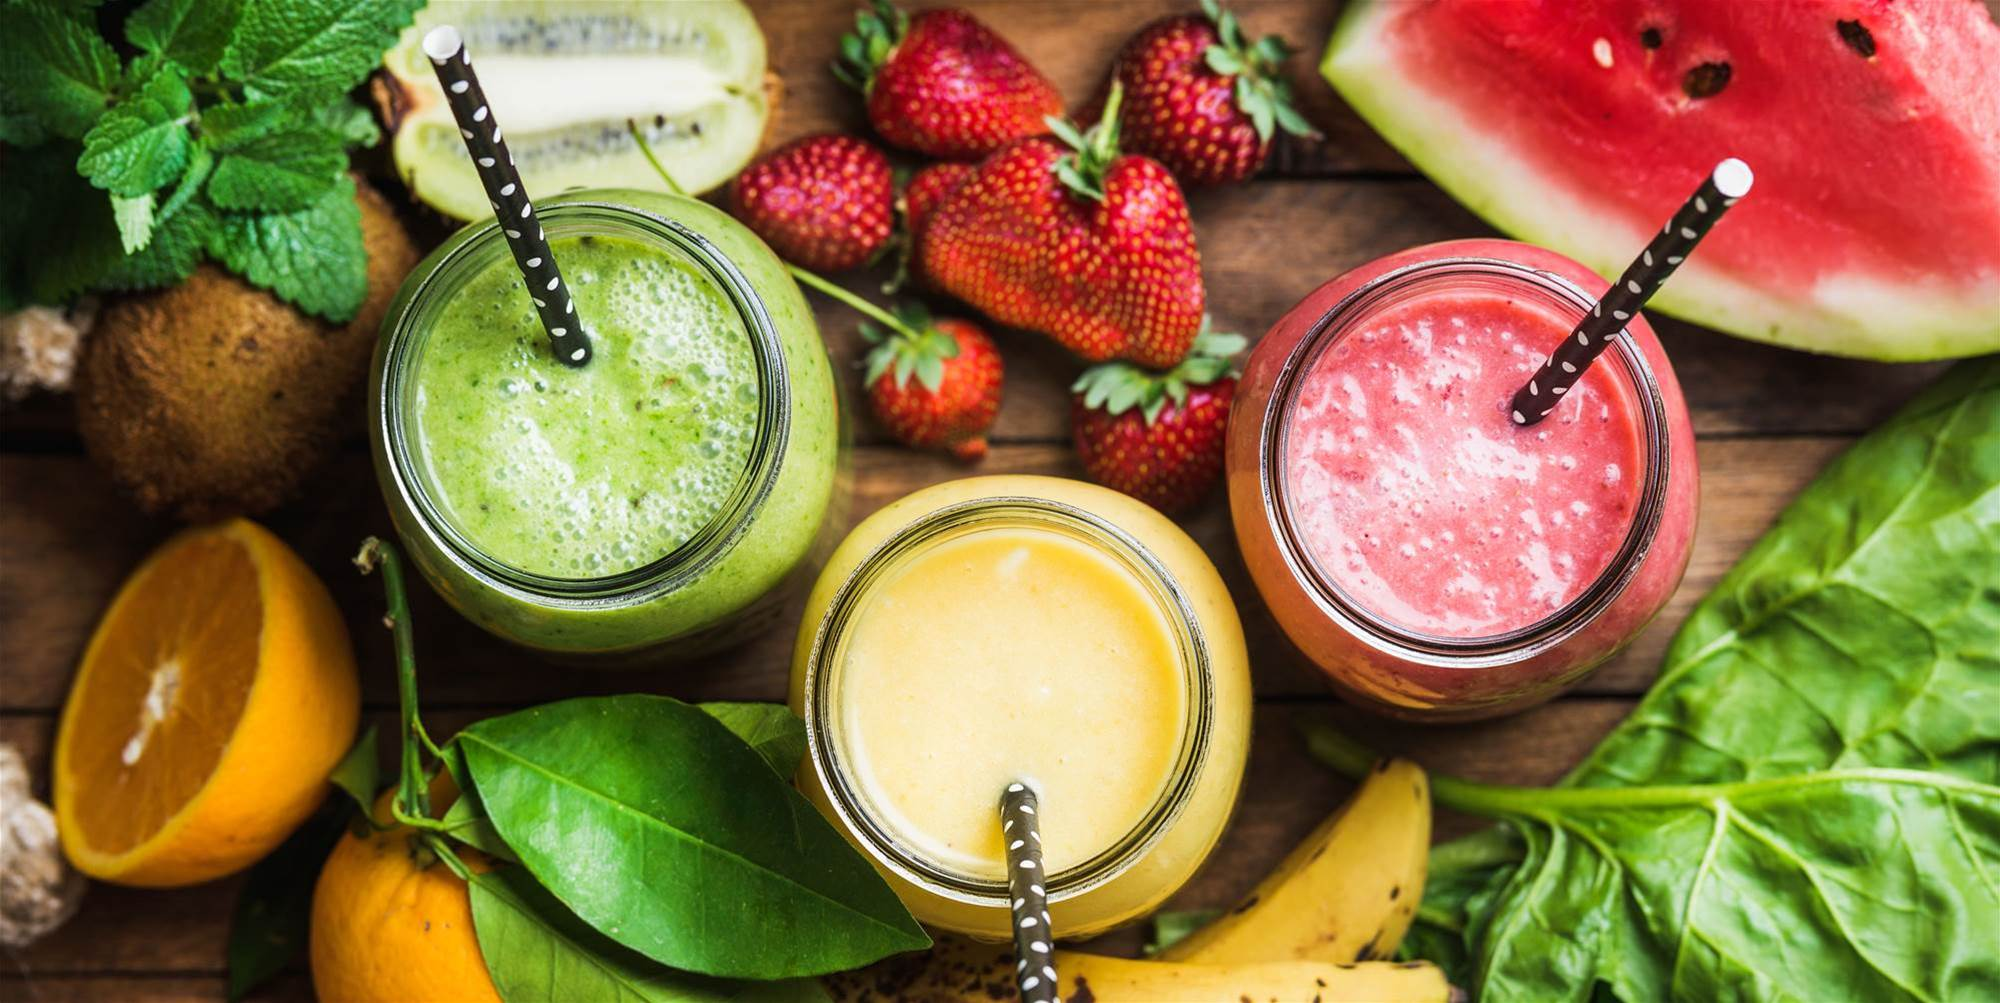 15 High-Protein Smoothies That Will Keep You Full for Hours